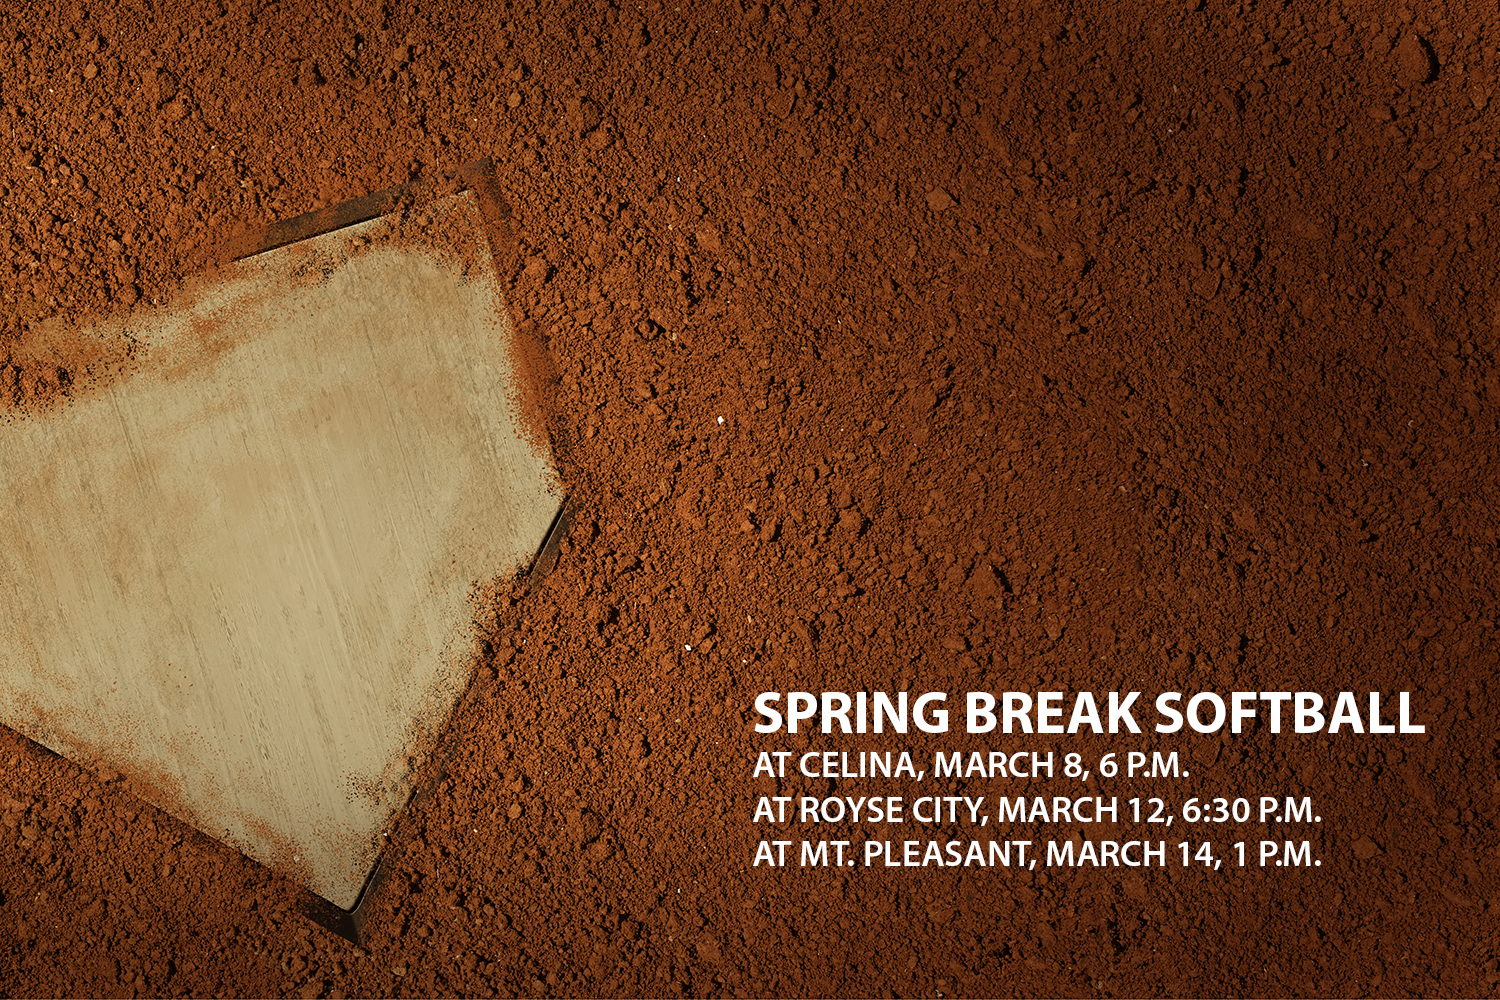 The varsity softball team is set to play three different teams over spring break.